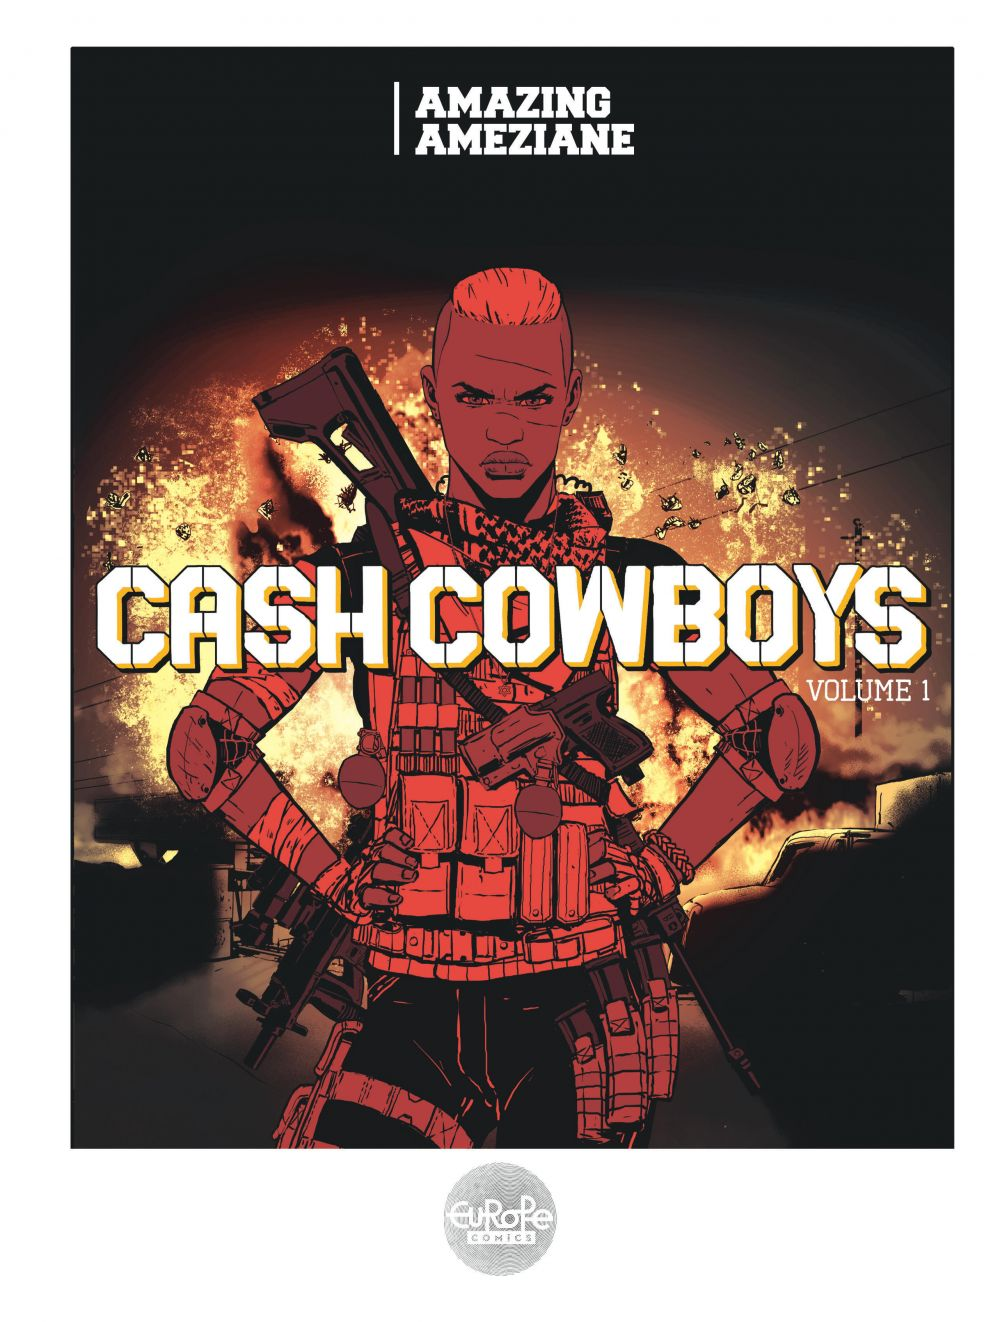 Cash Cowboys - Volume 1